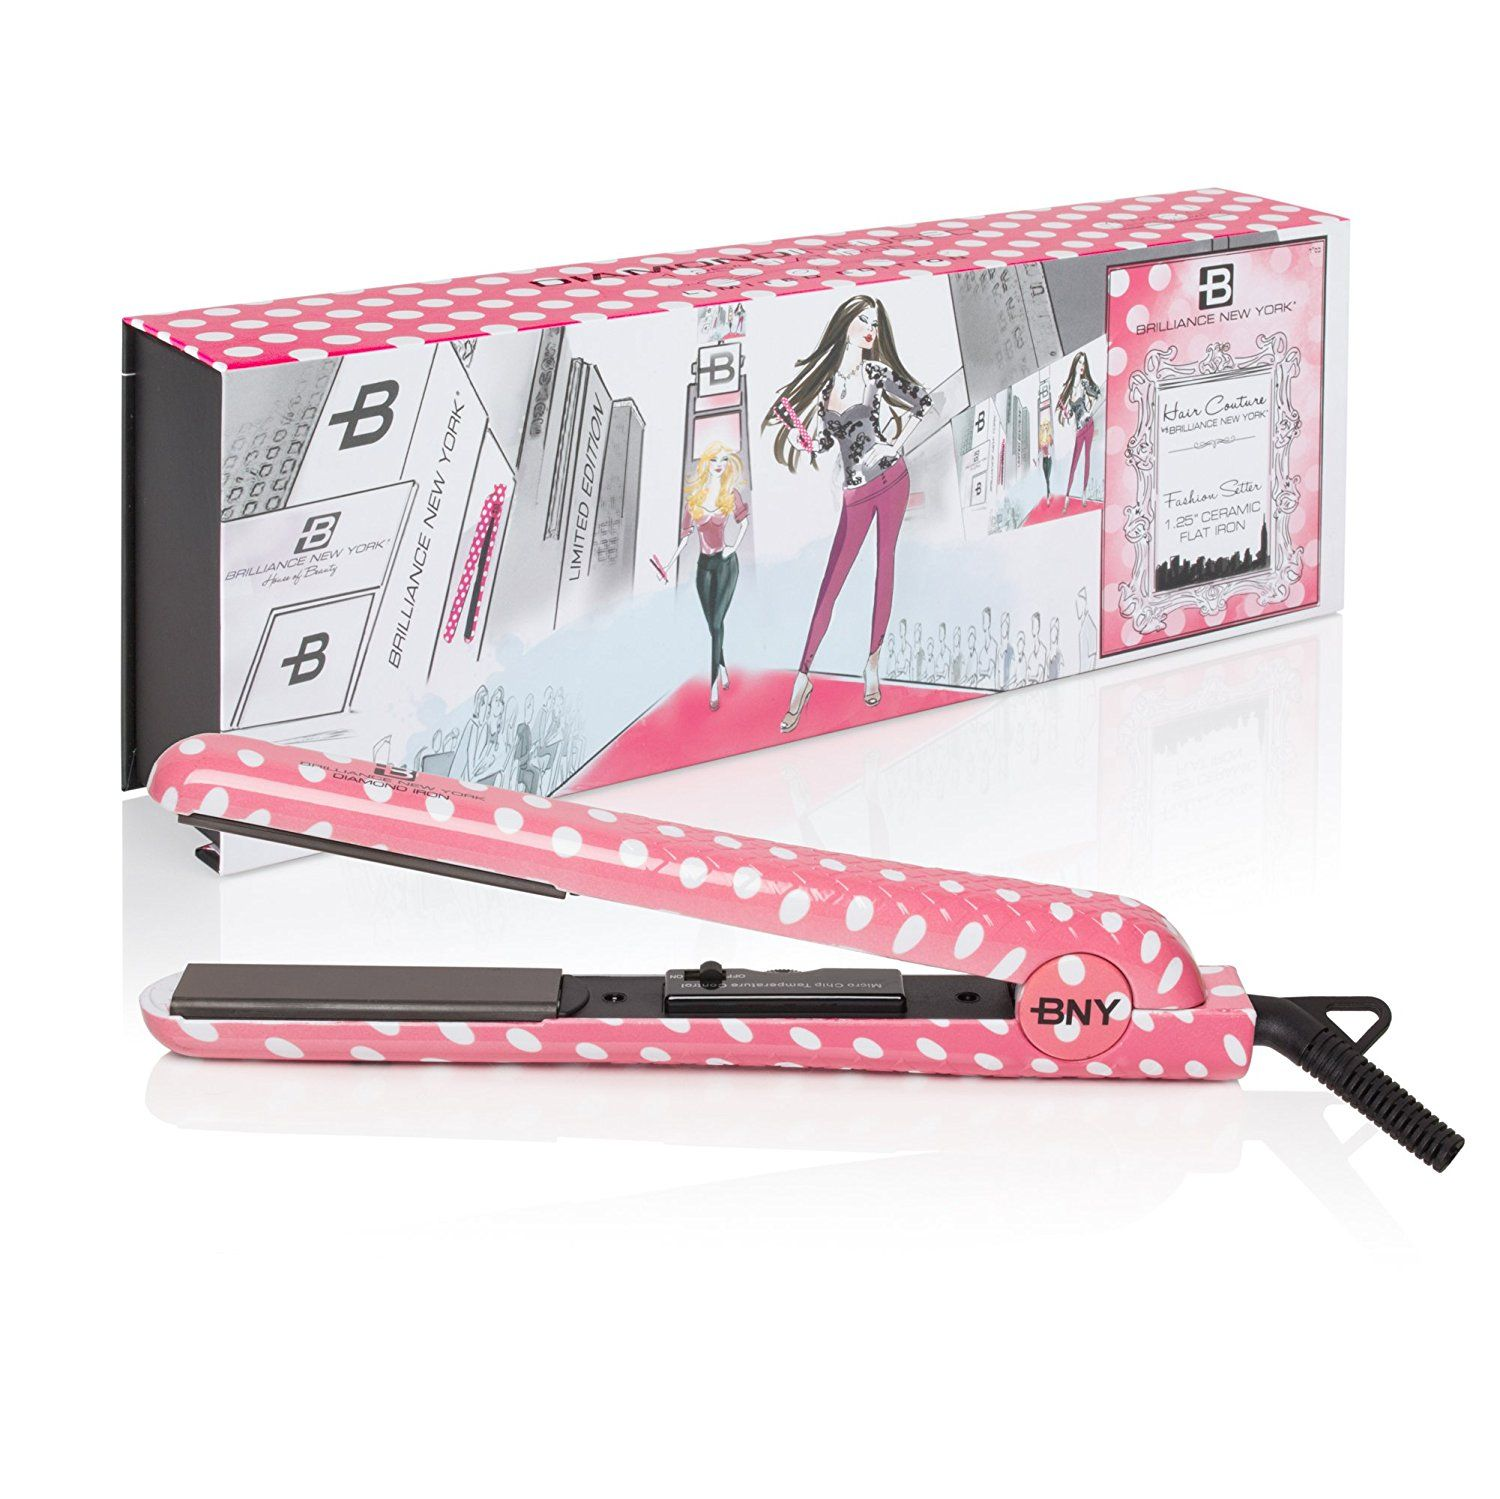 Pin On Hair Curling Iron And Wand